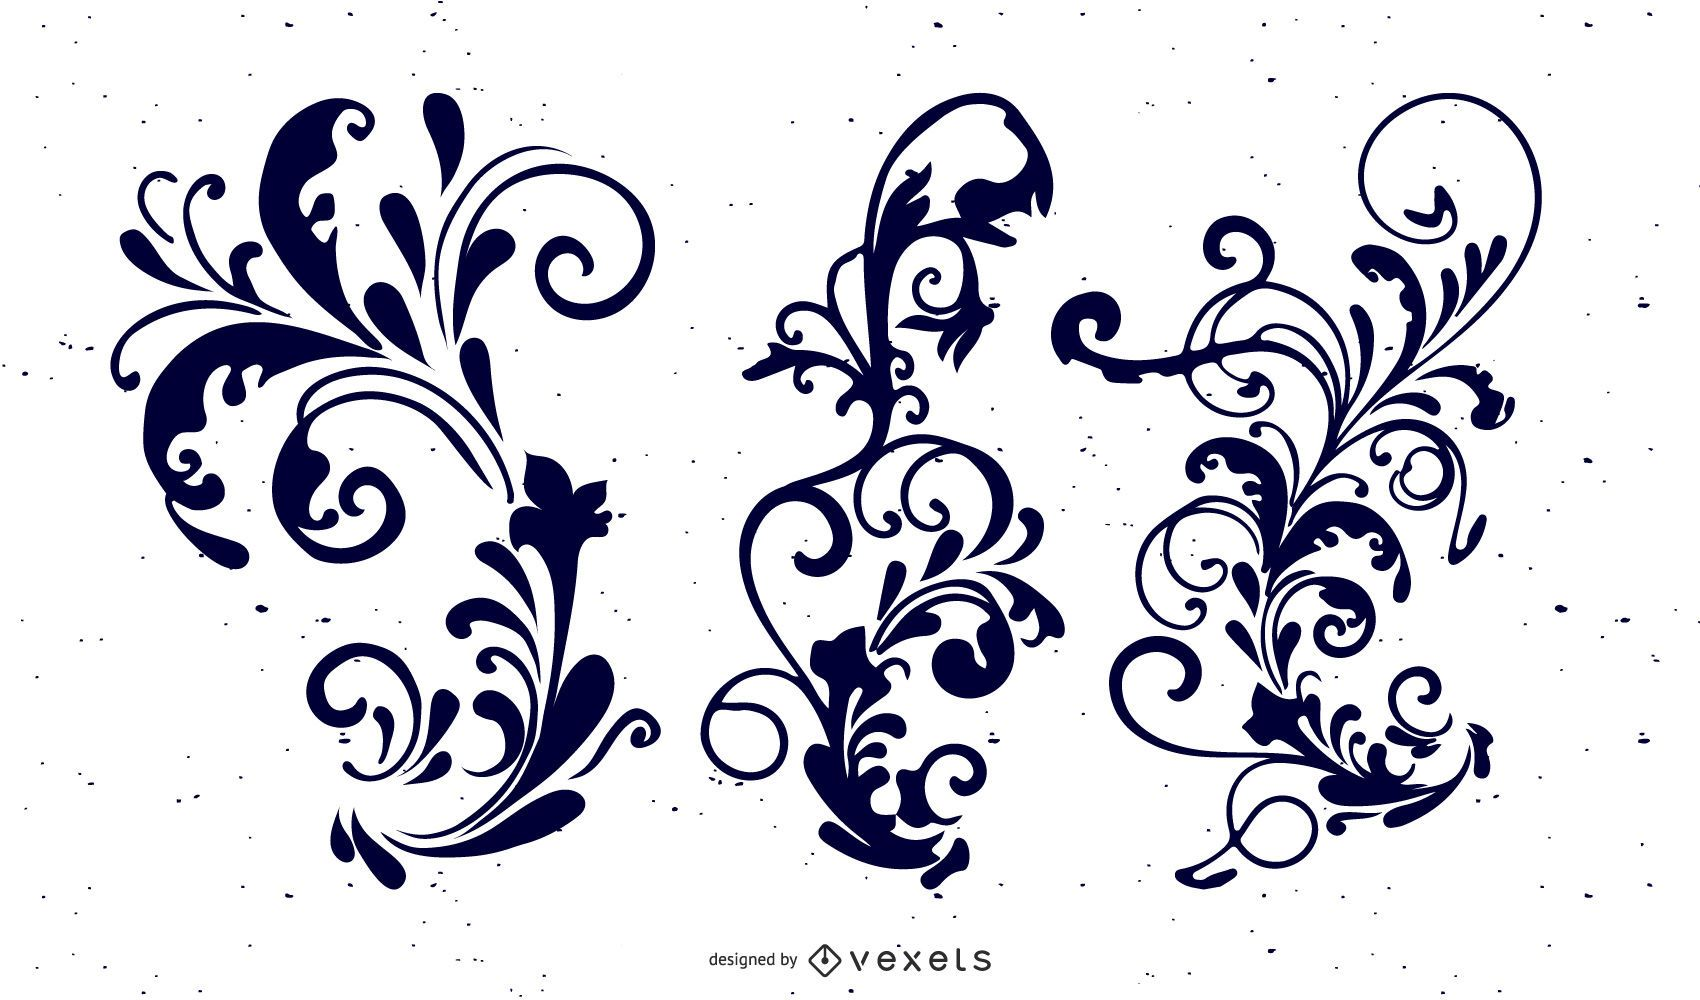 Decorative Ornaments with Outline Variation